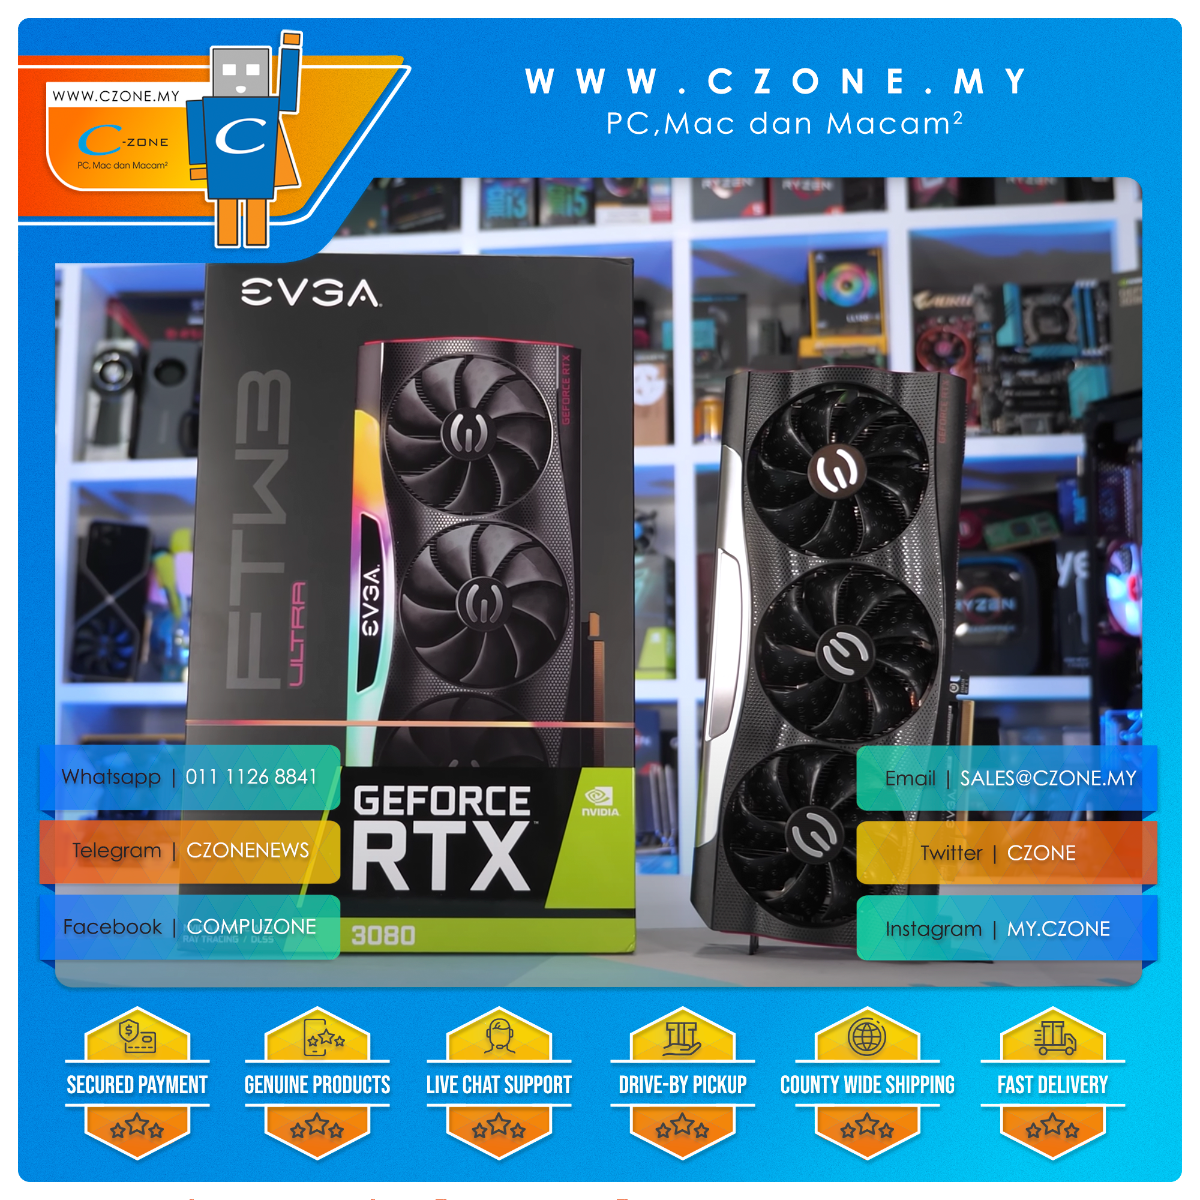 https://czone.my/czone/computer-components/core-components/video-card-video-devices.html?brand=5589